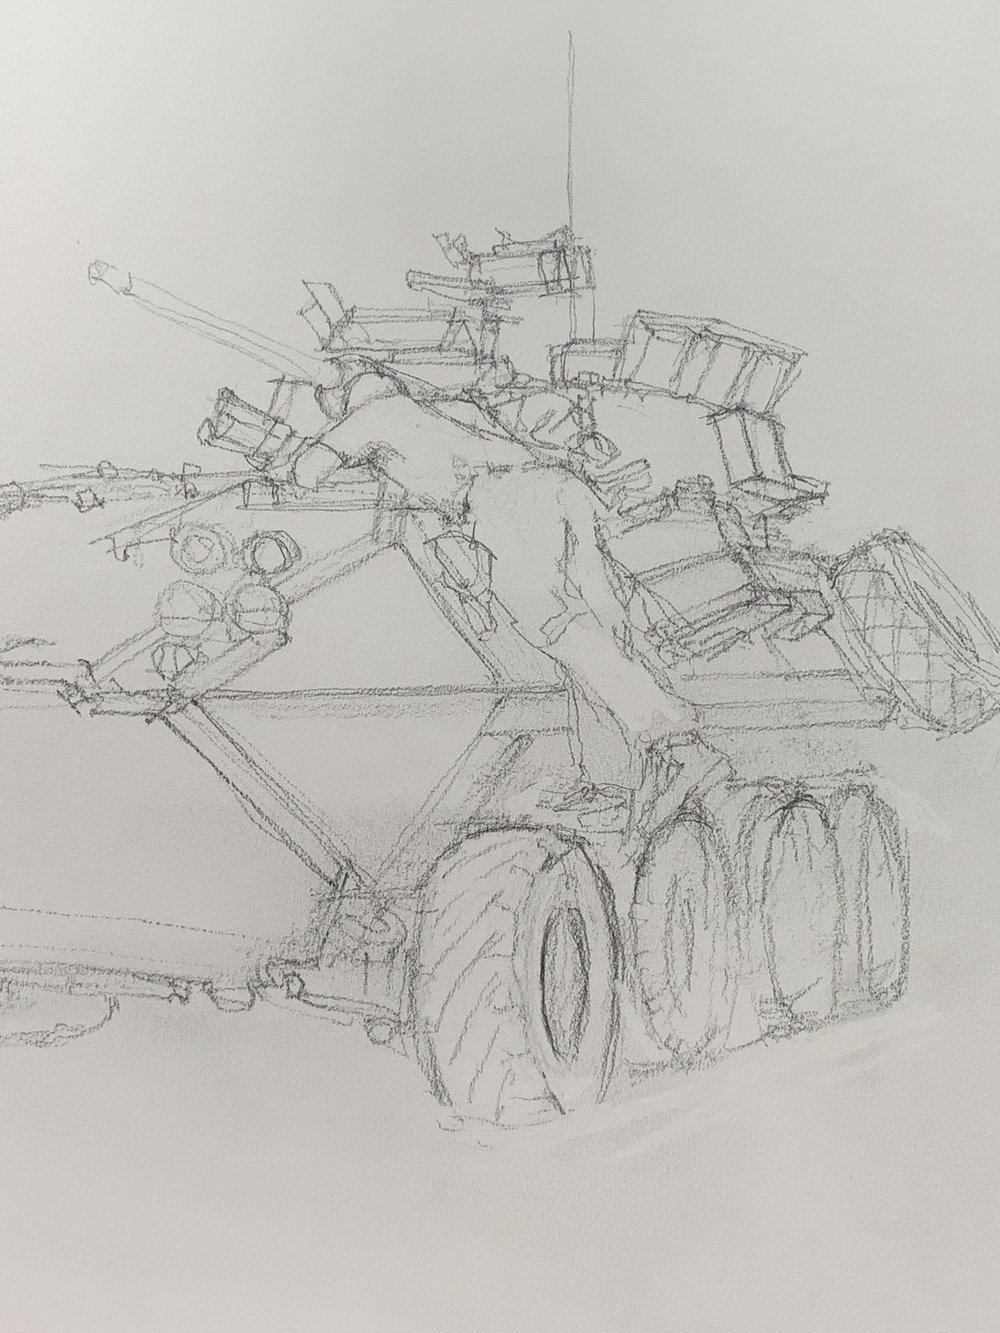 Maintenance and preparation on a Light Armored Vehicle